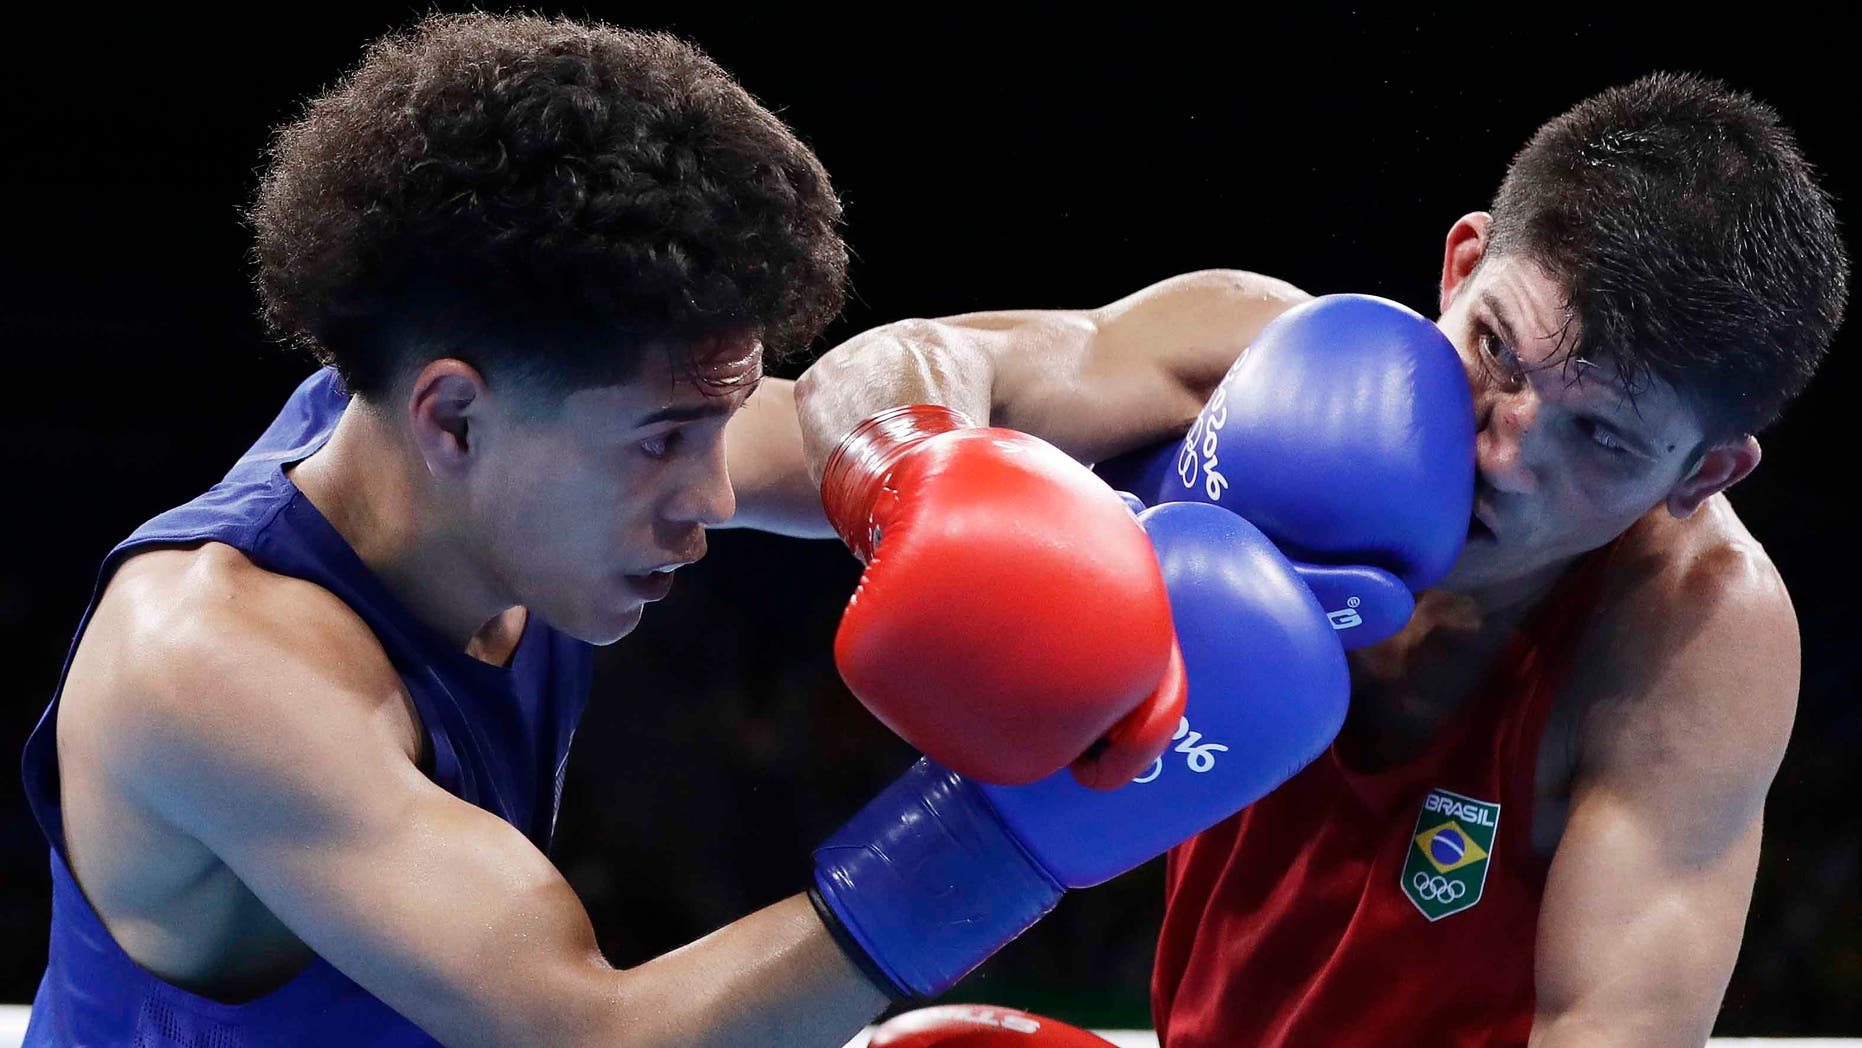 Antonio Vargas, left, during boxing match at the 2016 Summer Olympics in Rio de Janeiro, Brazil, Saturday, Aug. 13, 2016.